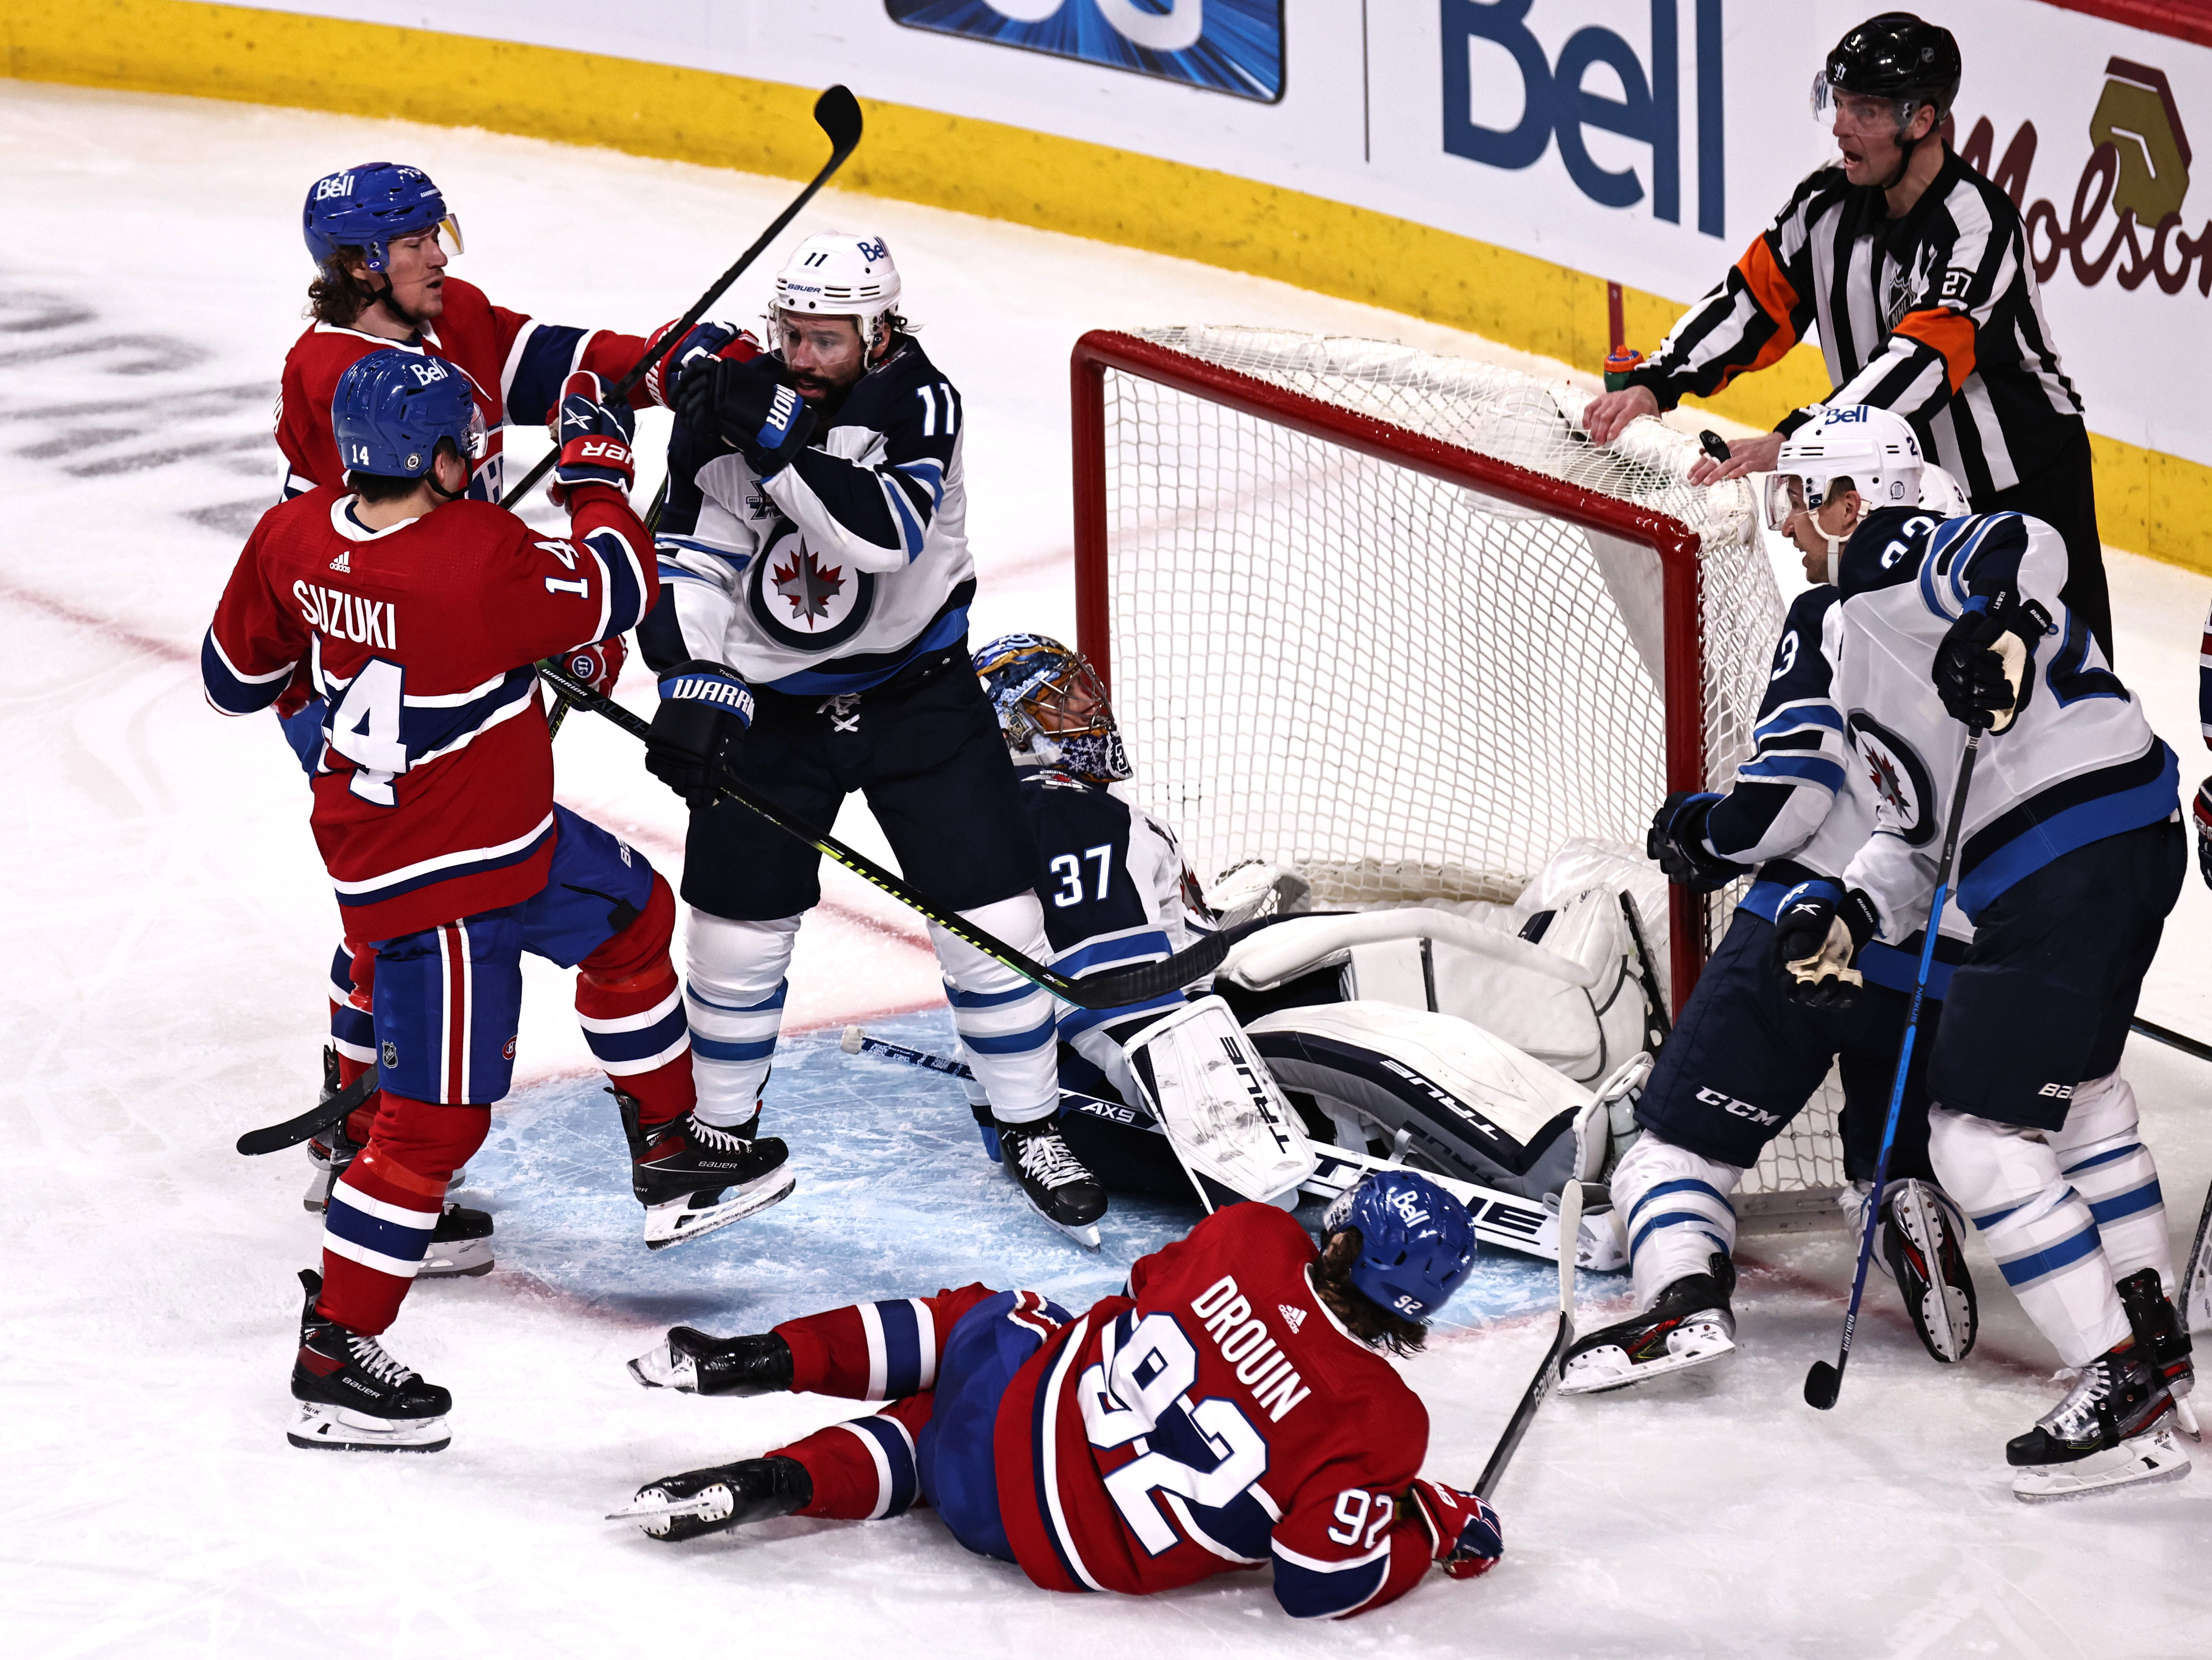 Ex-College Hockey Players Lead Jets Past Oilers